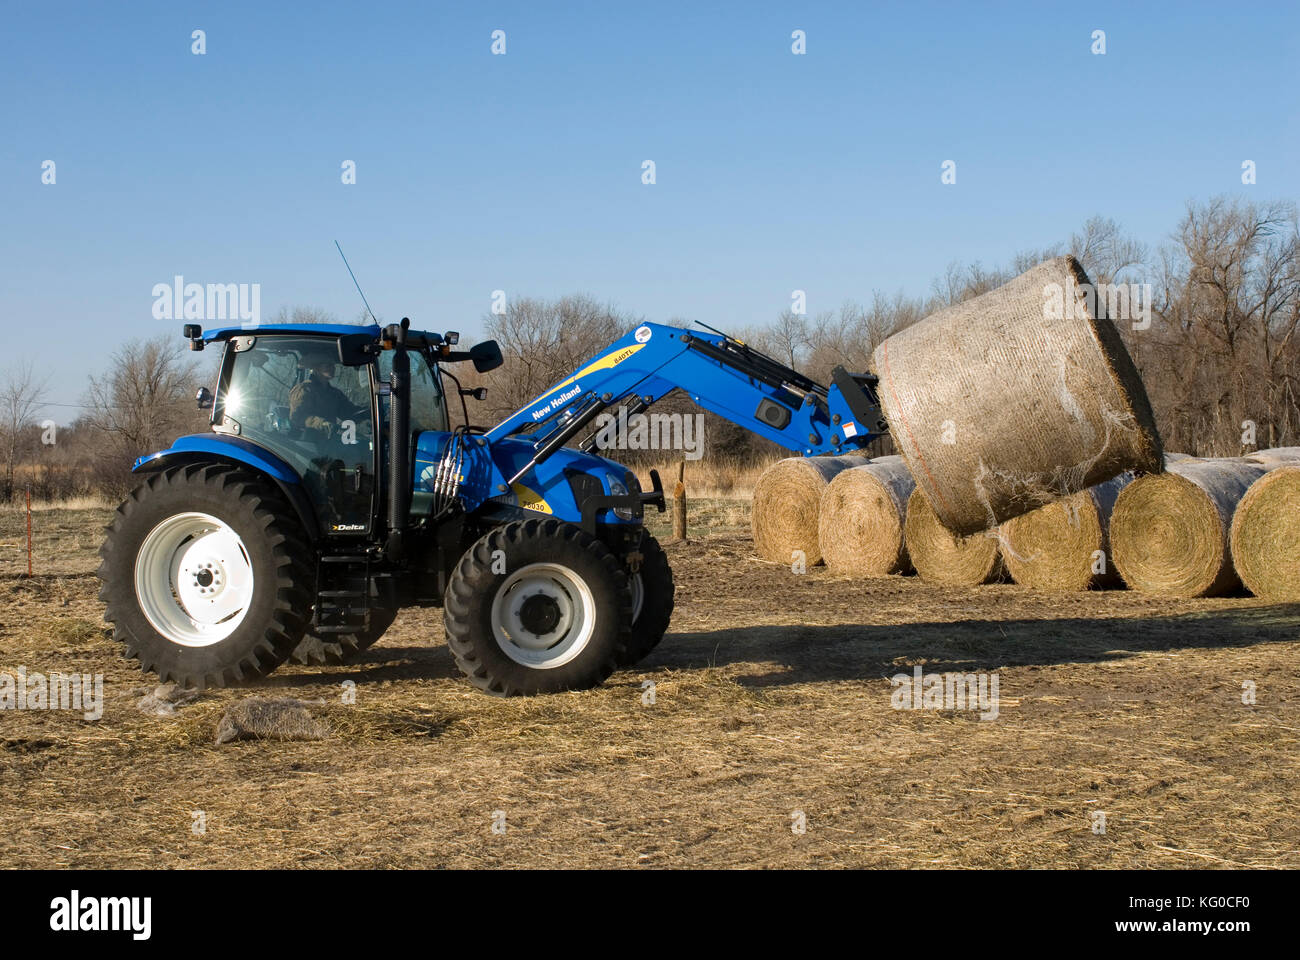 New holland t mit frontlader agricultural tractors